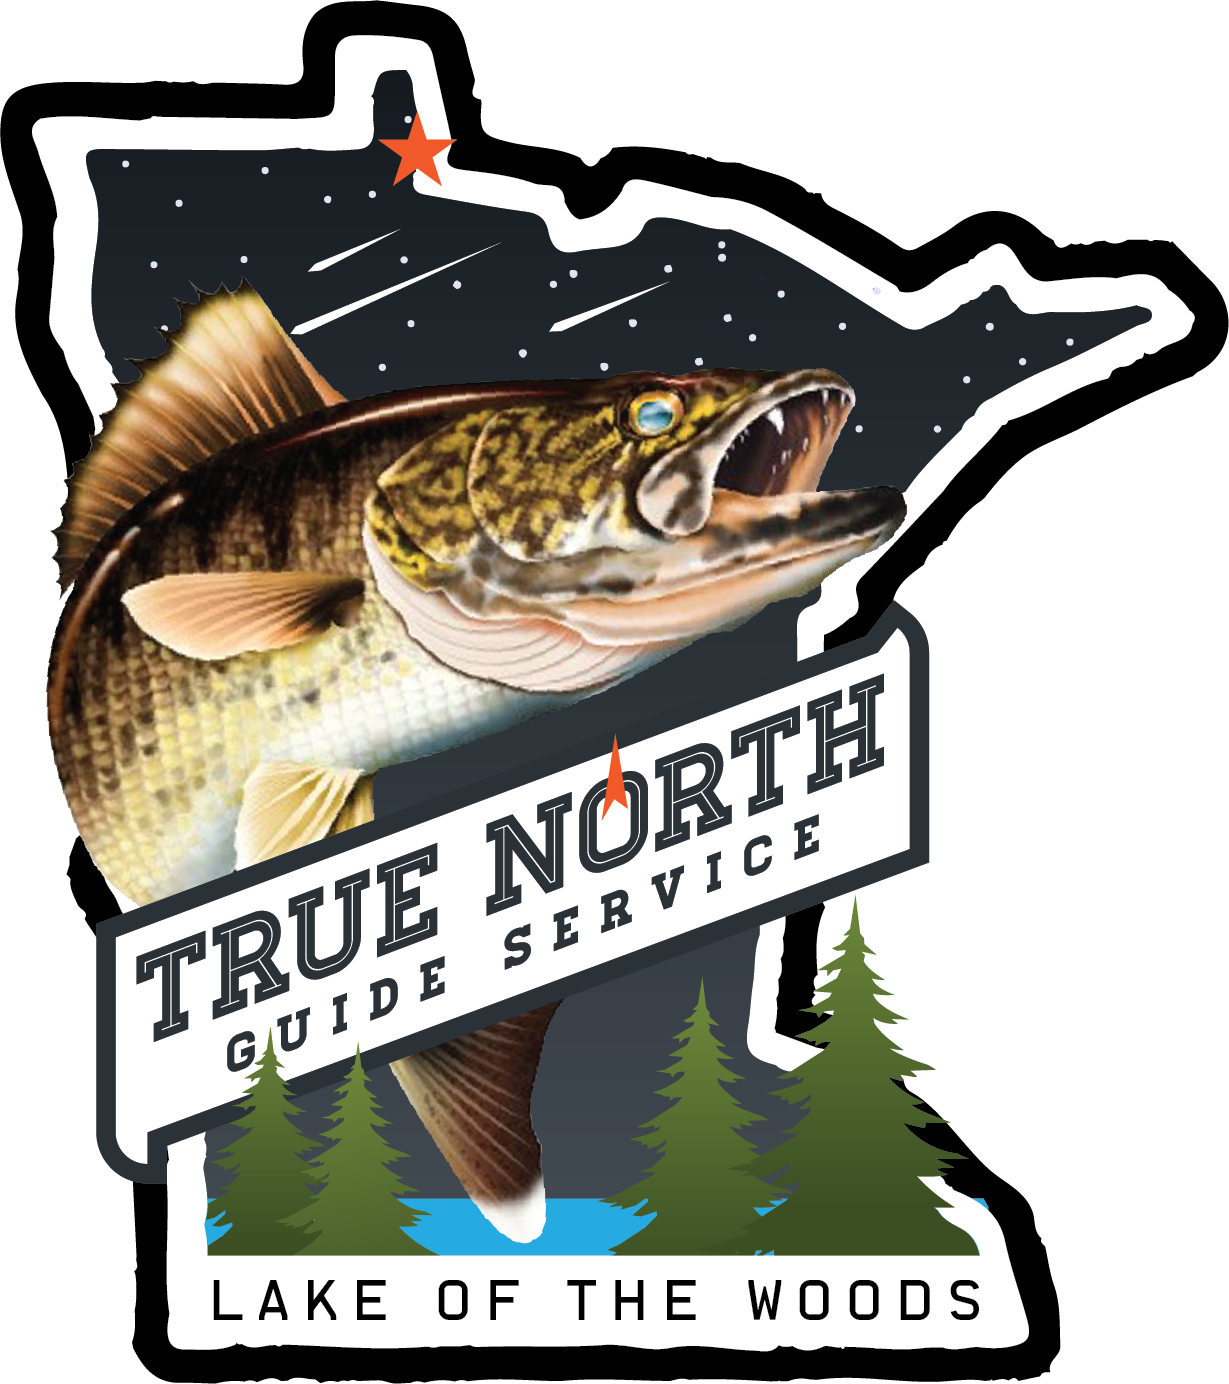 True North Guide Service